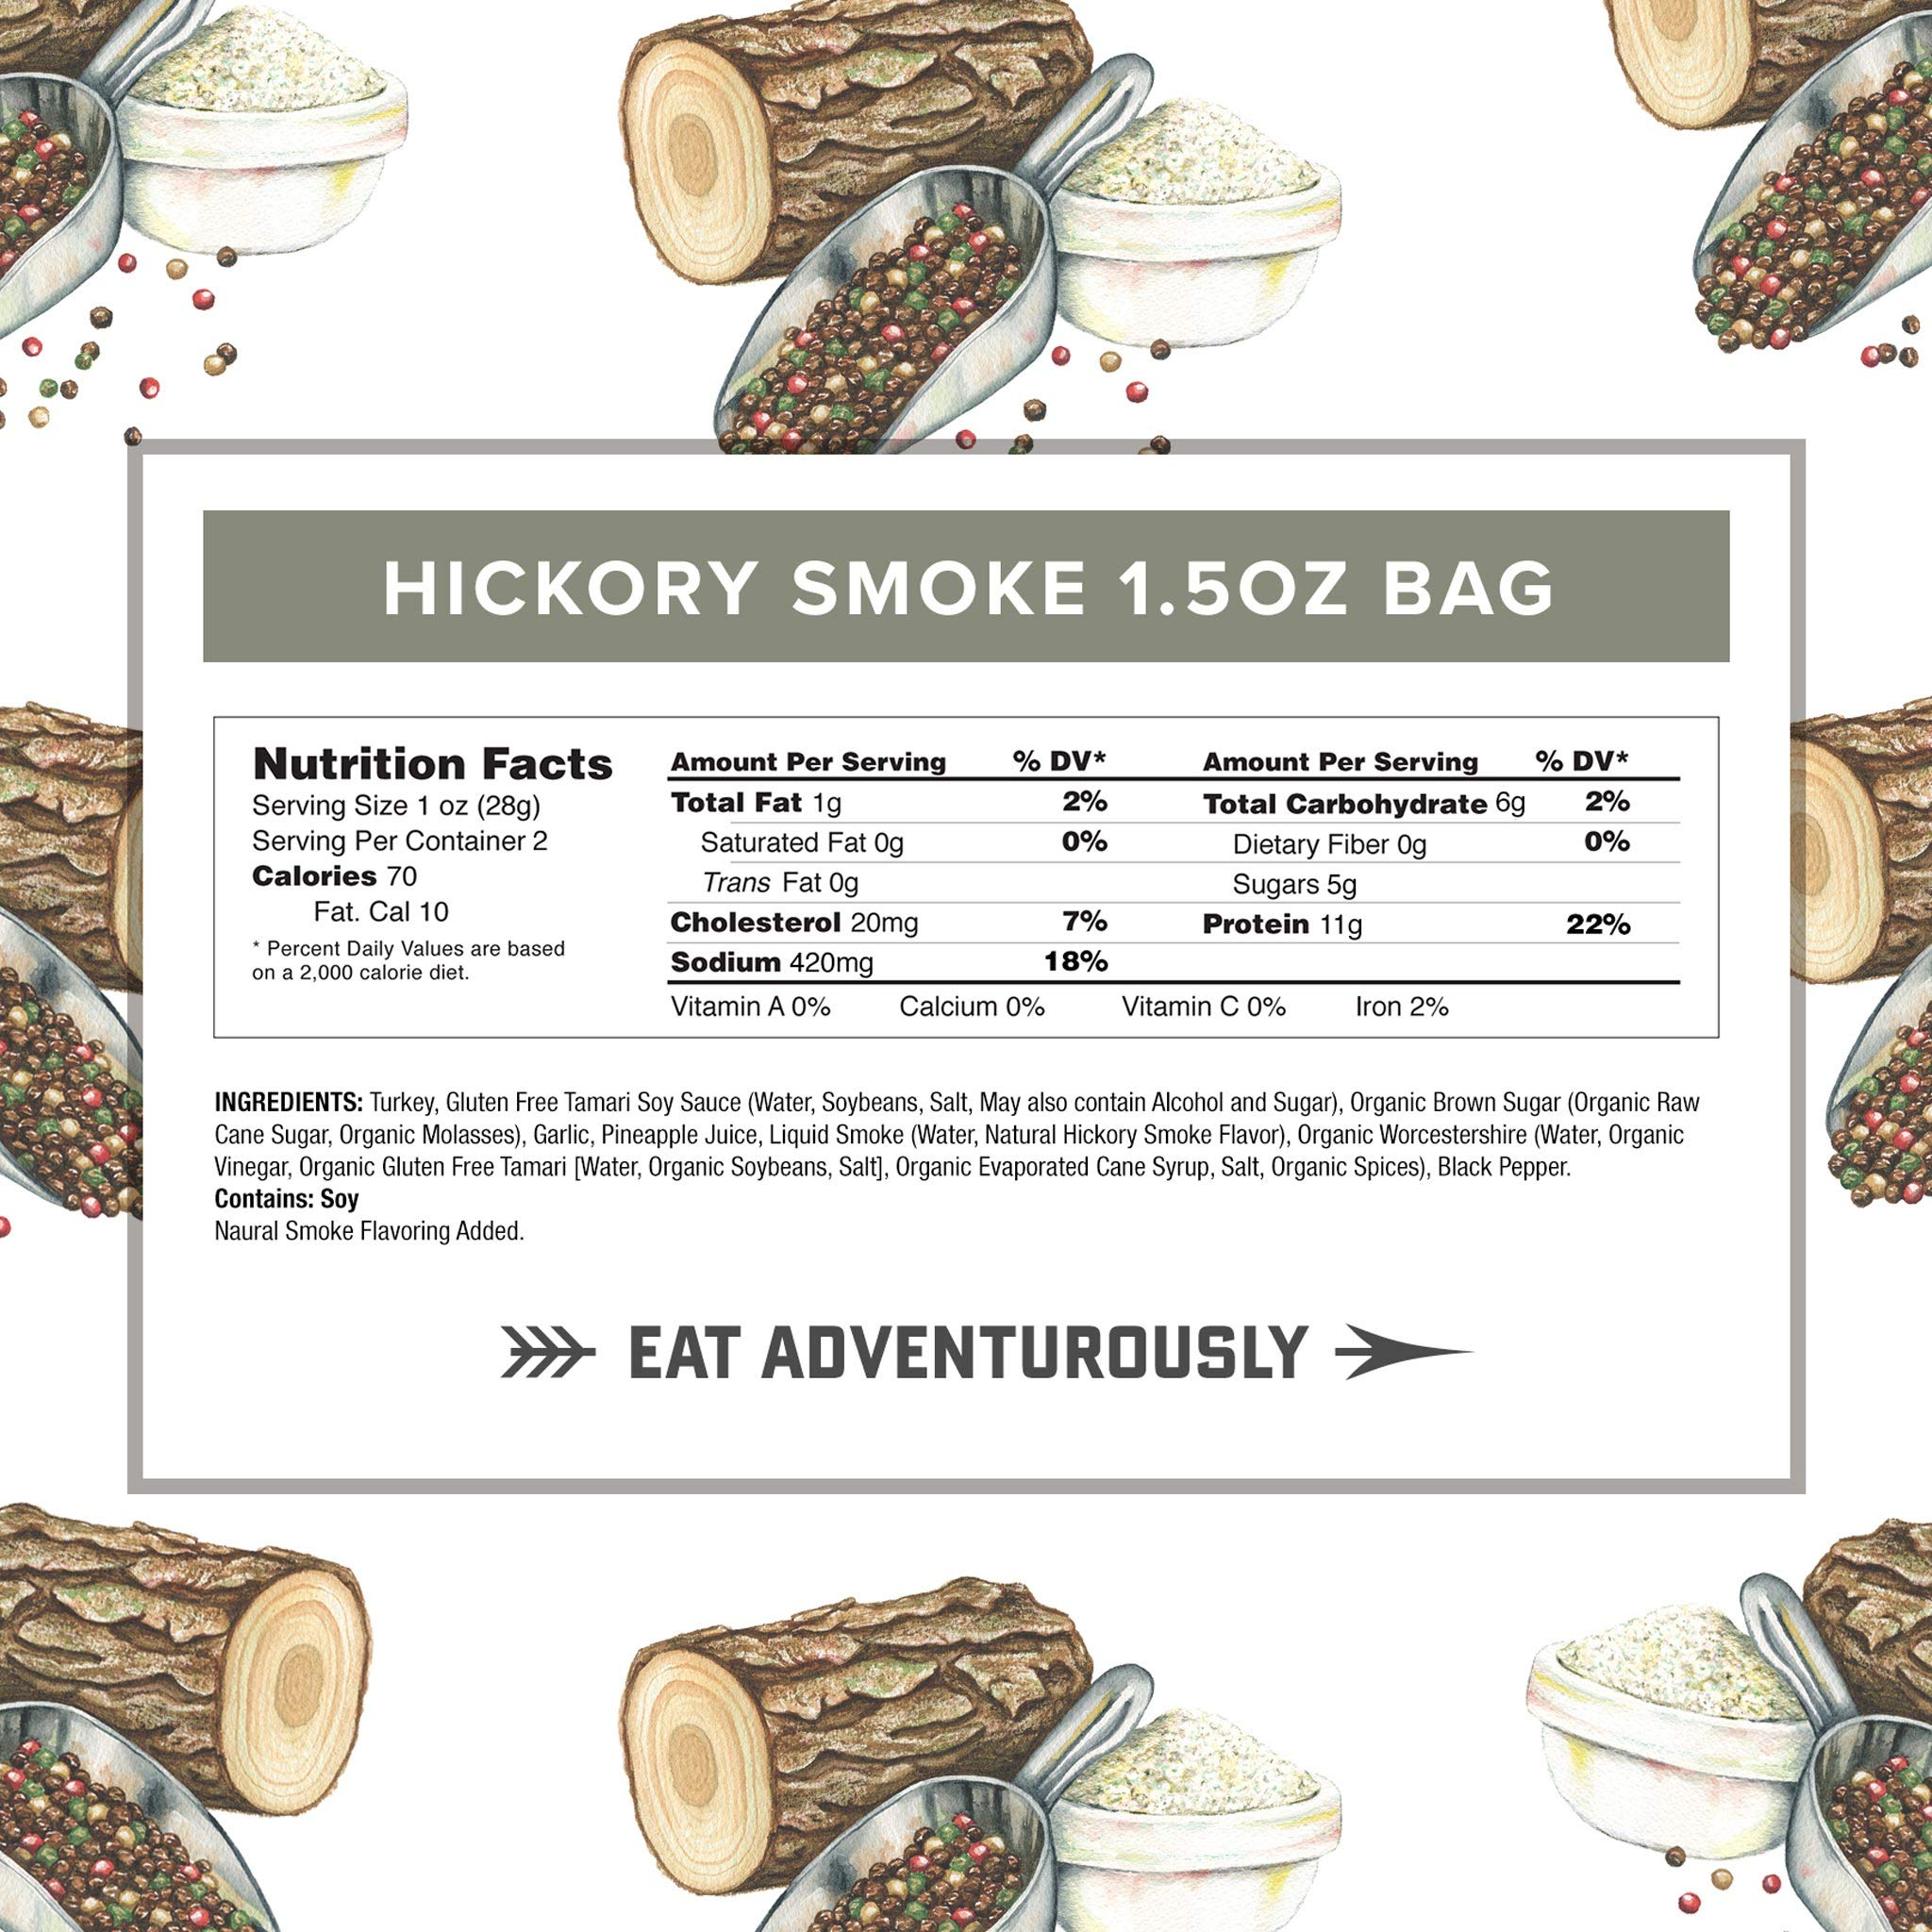 Hickory Smoke Turkey Jerky by Country Archer   Antibiotic Free   Gluten Free   1.5 Ounce (Pack of 12) by Country Archer (Image #3)